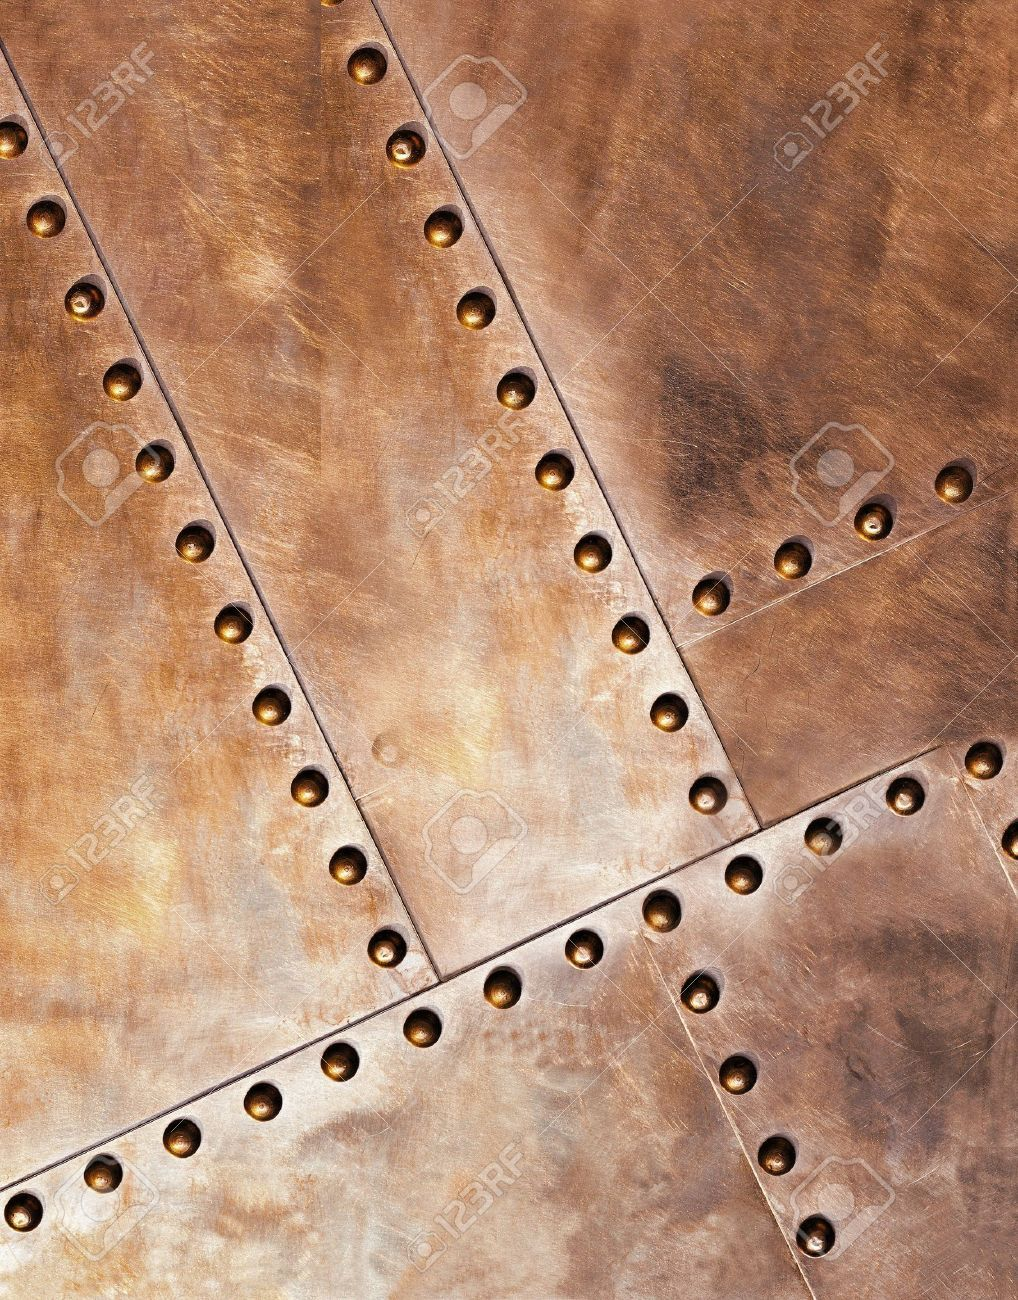 Structure of old metal with rivets Stock photos, Metal